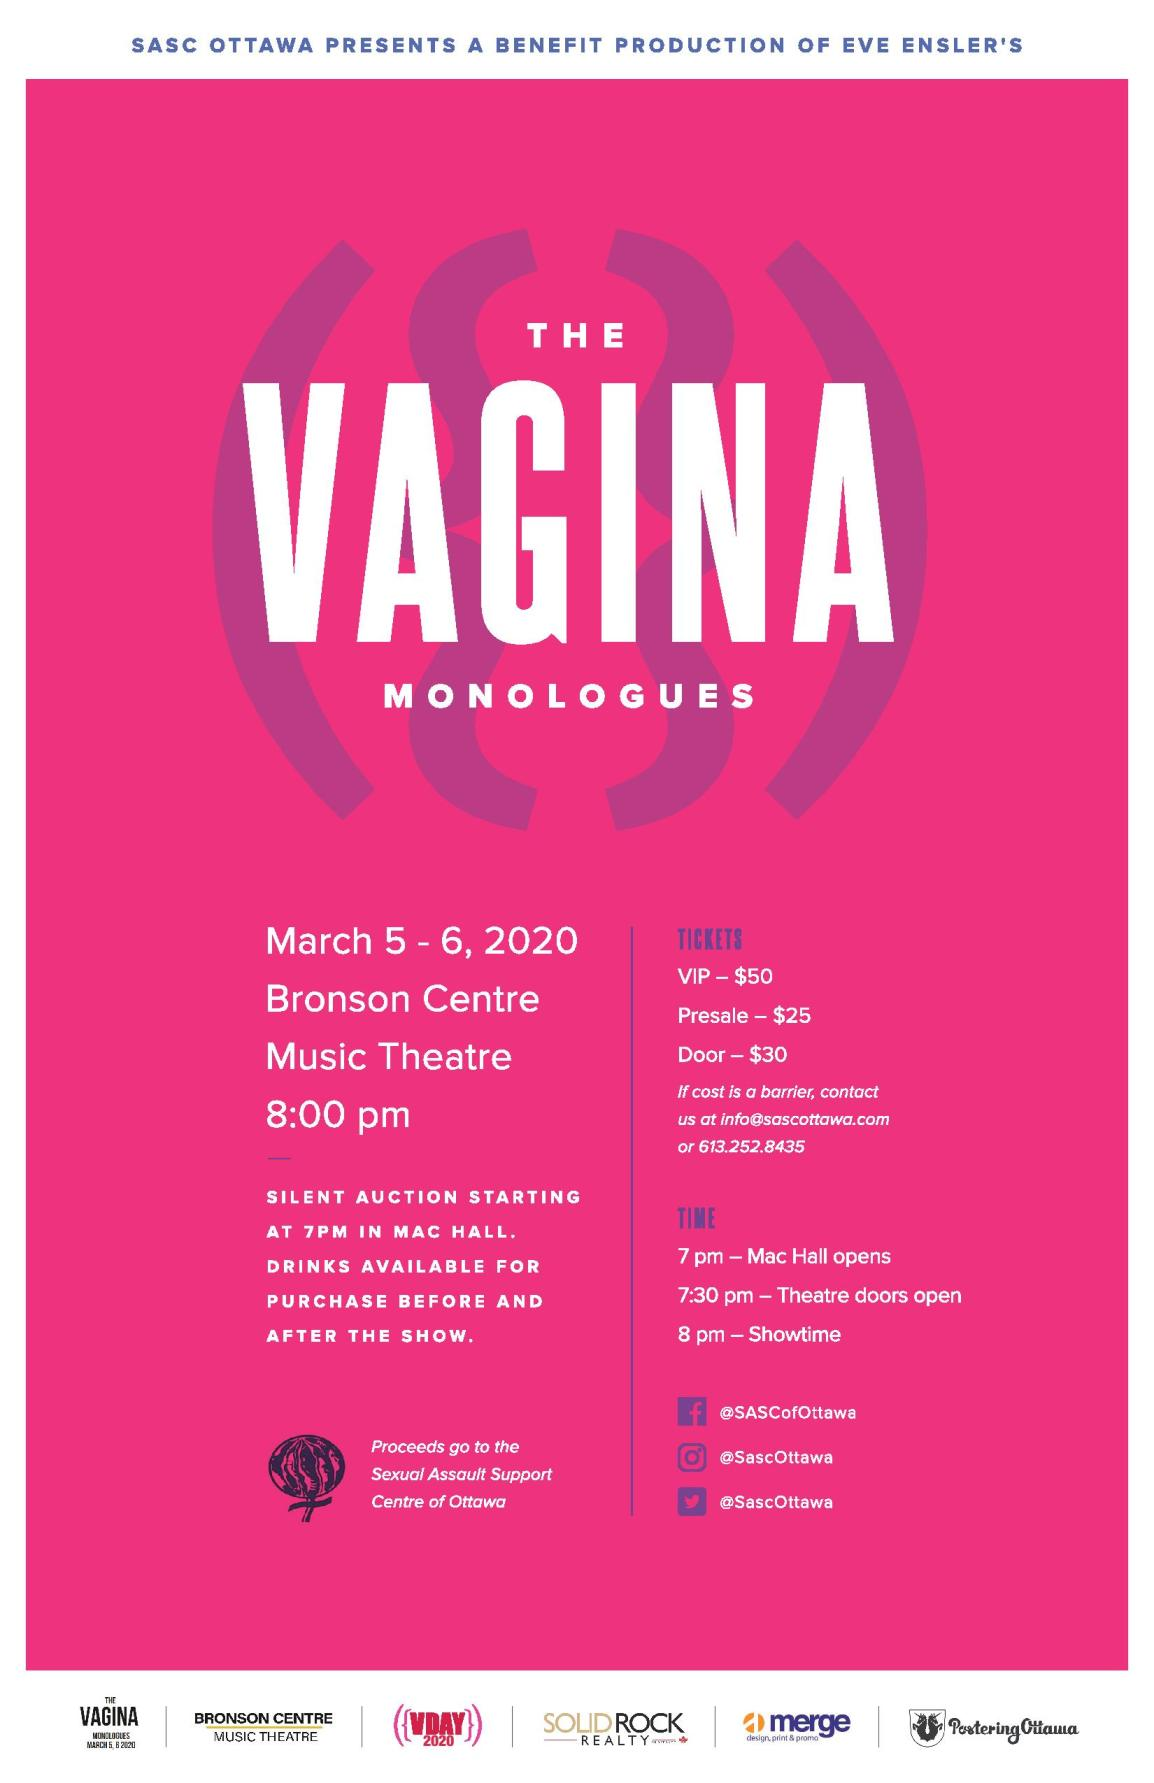 VaginaMonologues2020-outlined-page-001